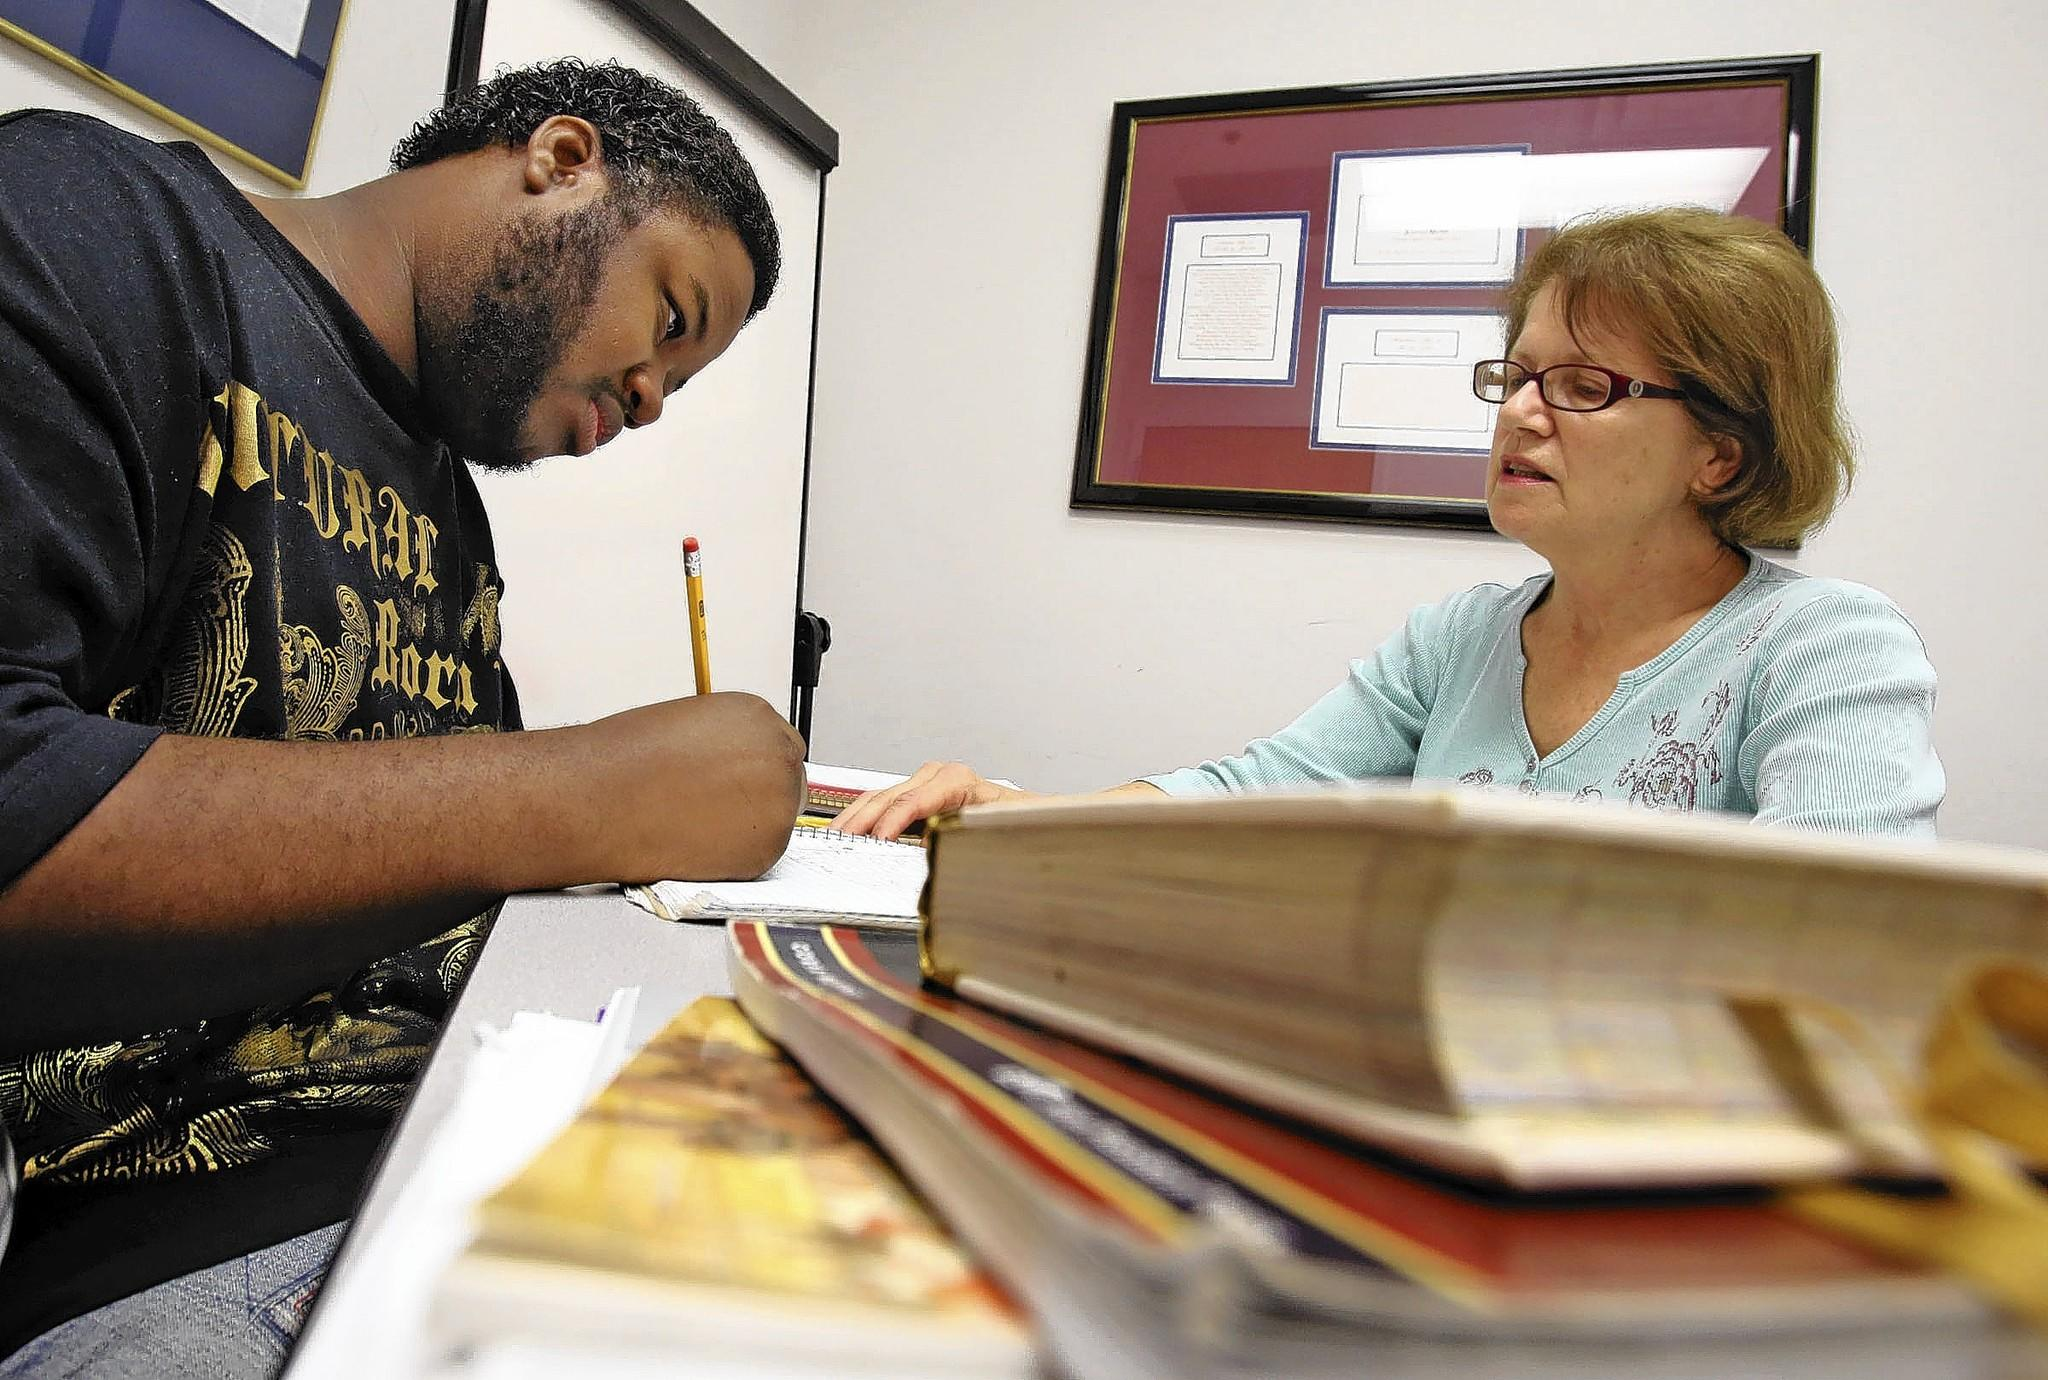 Jeremy White, 23, of Orlando works on writing skills with Marianne McKinney, a volunteer tutor at Adult Literacy League in Orlando.